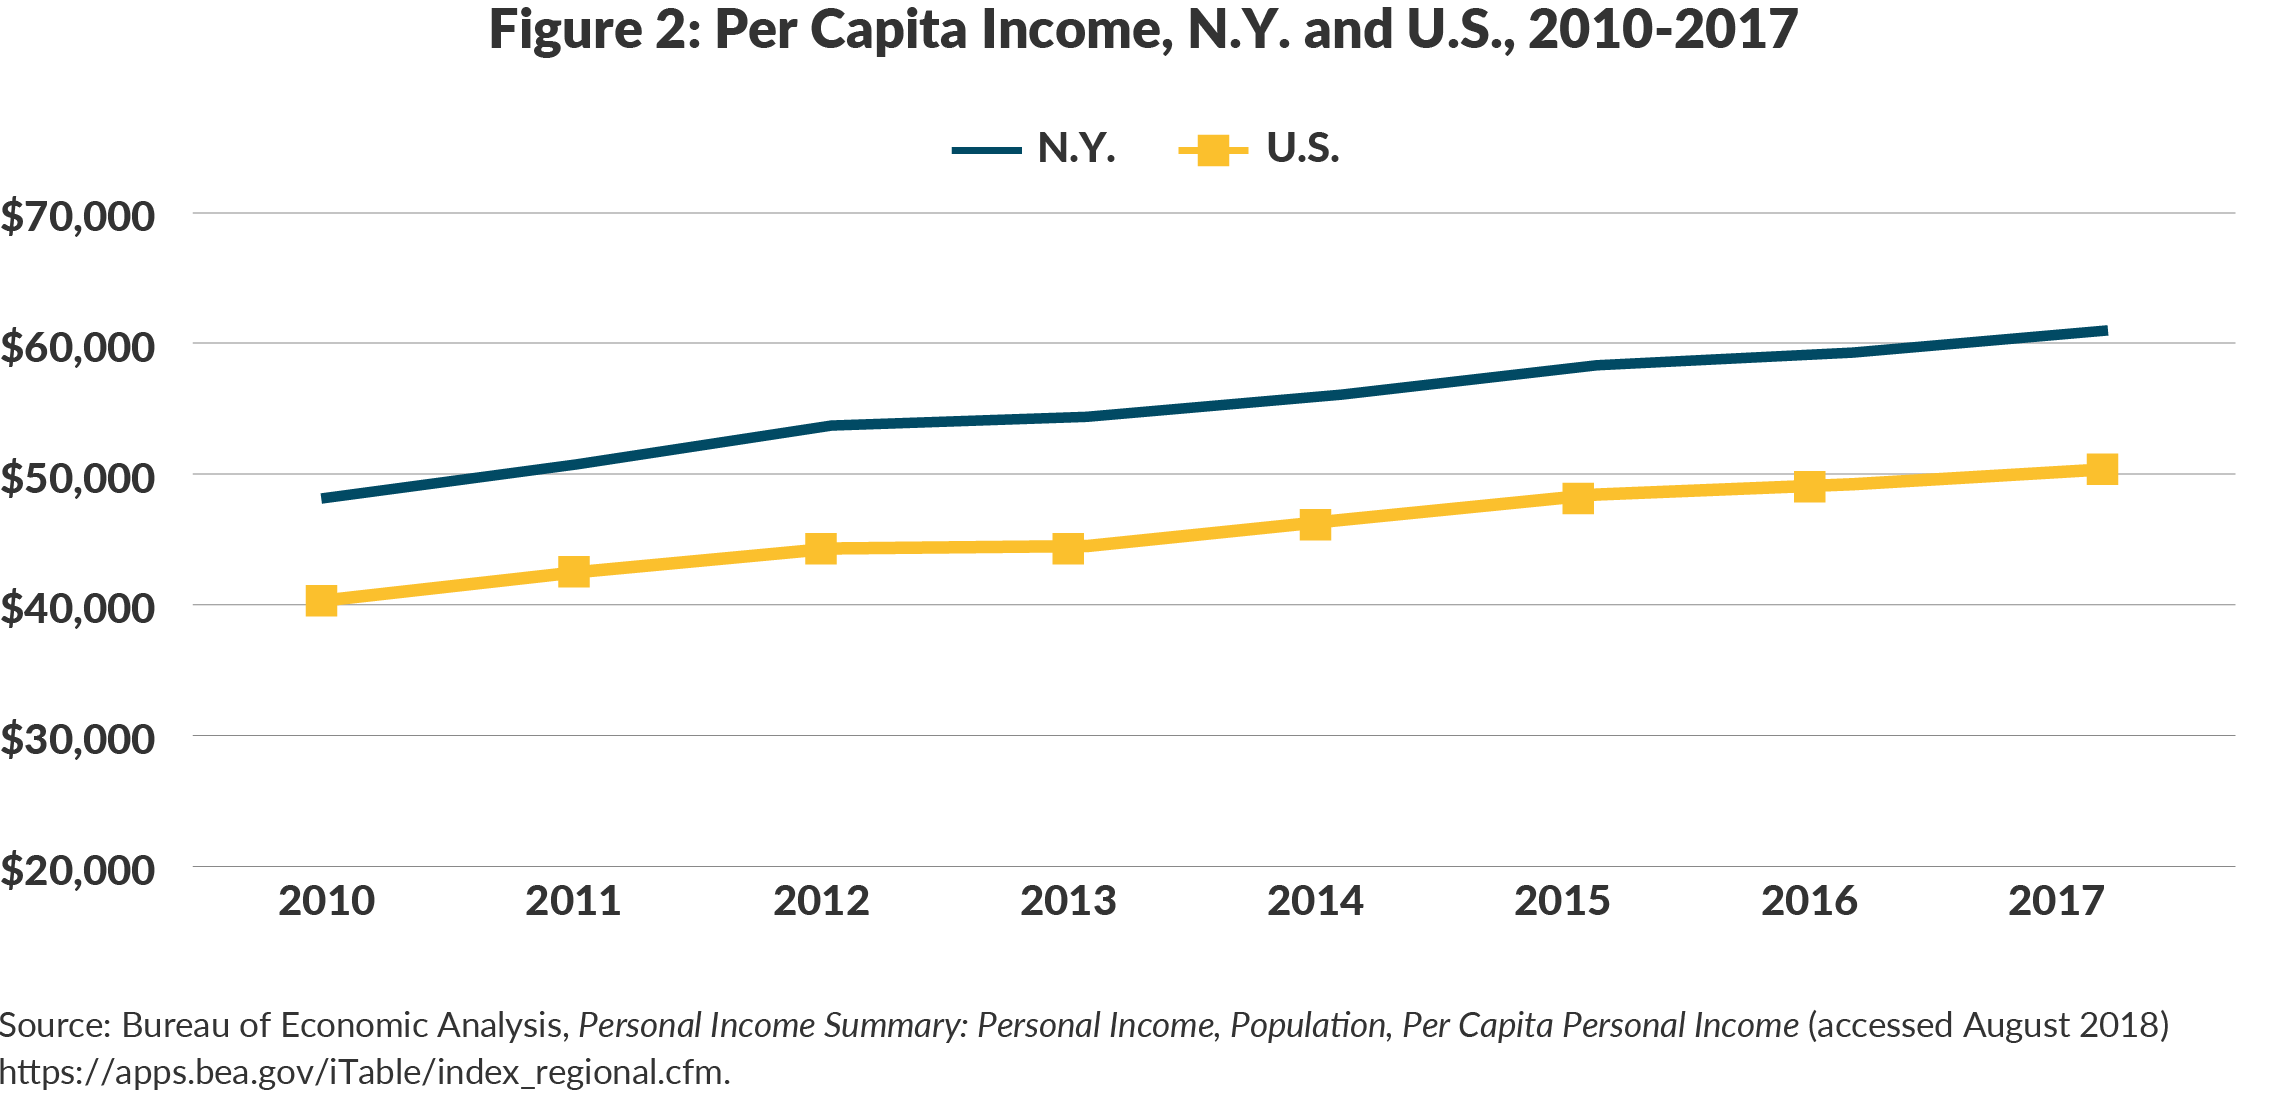 Figure 2: Per Capita Income, N.Y. and U.S., 2010-2017